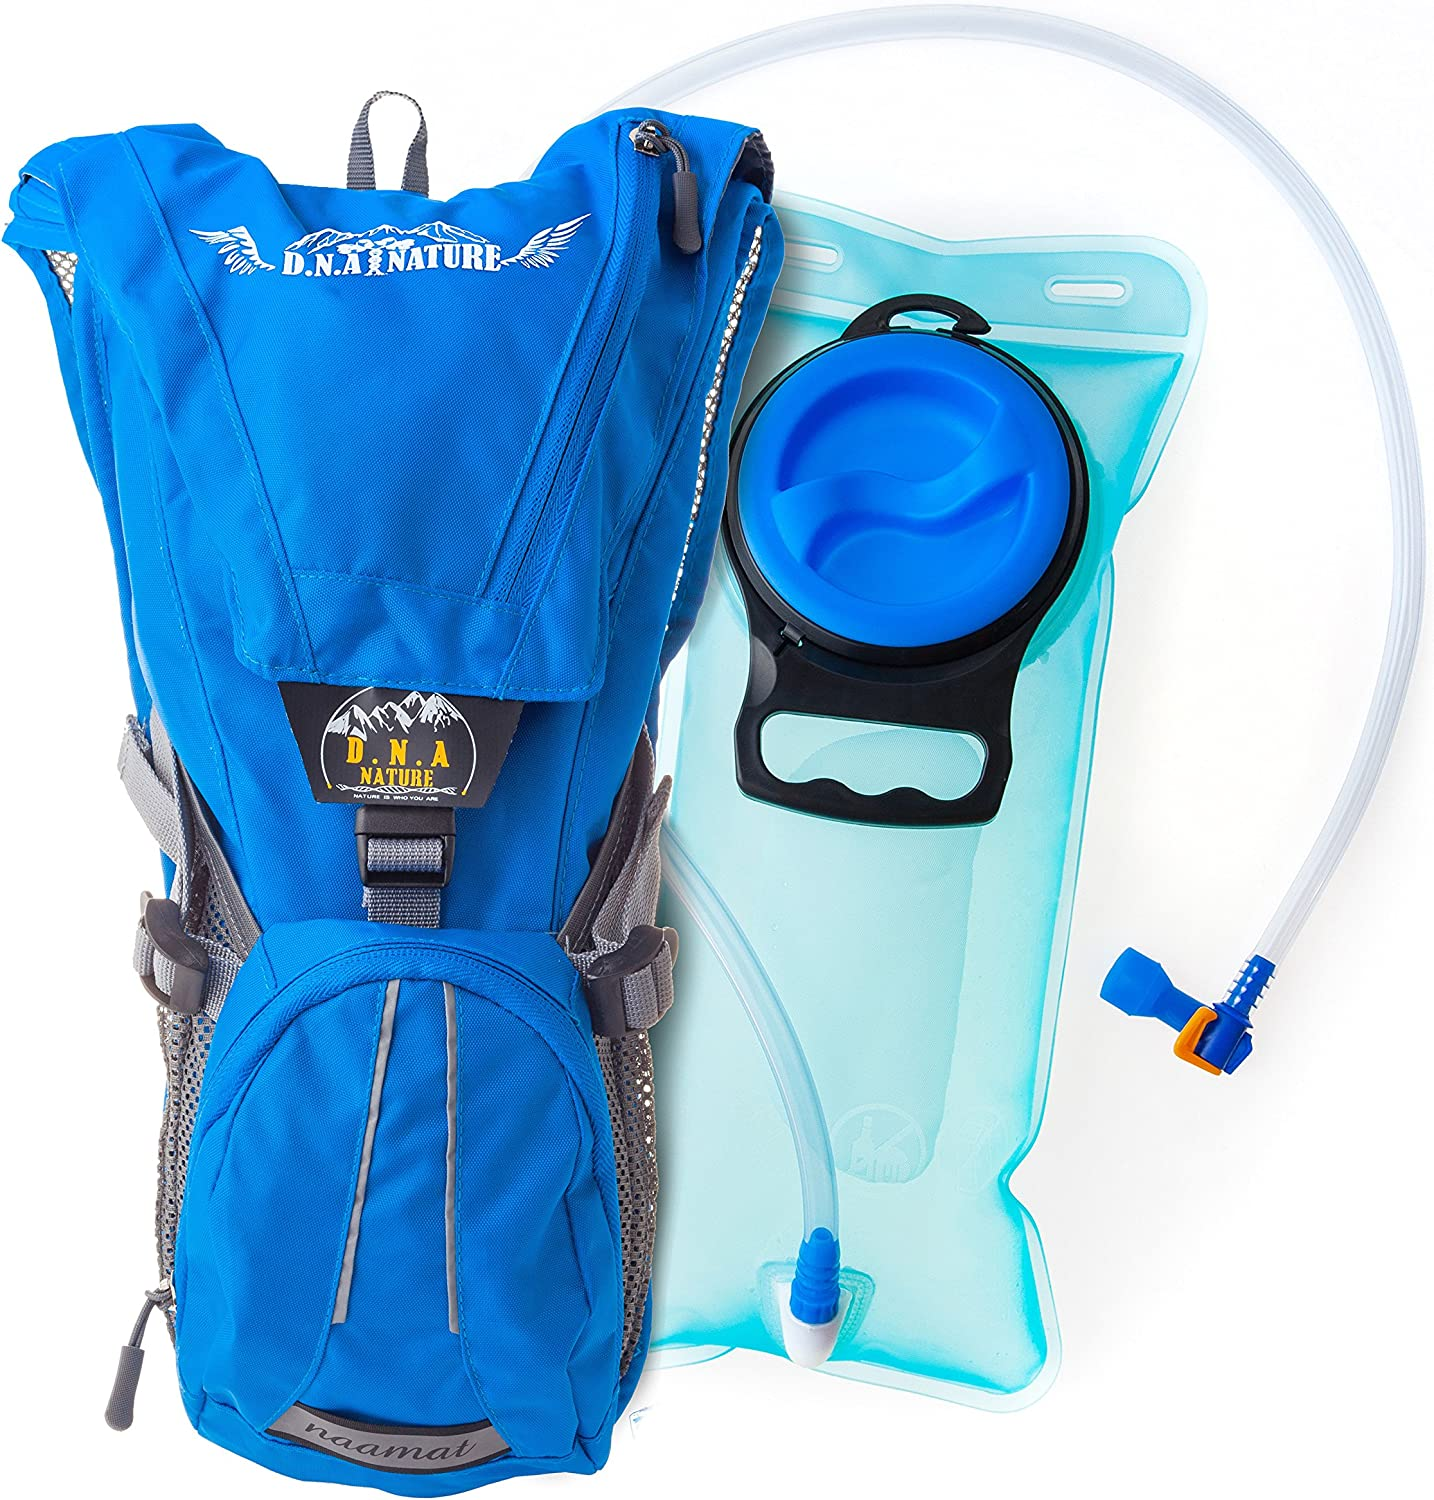 Unafreely Hydration Pack Backpack Water Bladder Bag with 2 Liter Water Bladder,for Cycling Hiking Hydration Pack Rucksack Travel Camping